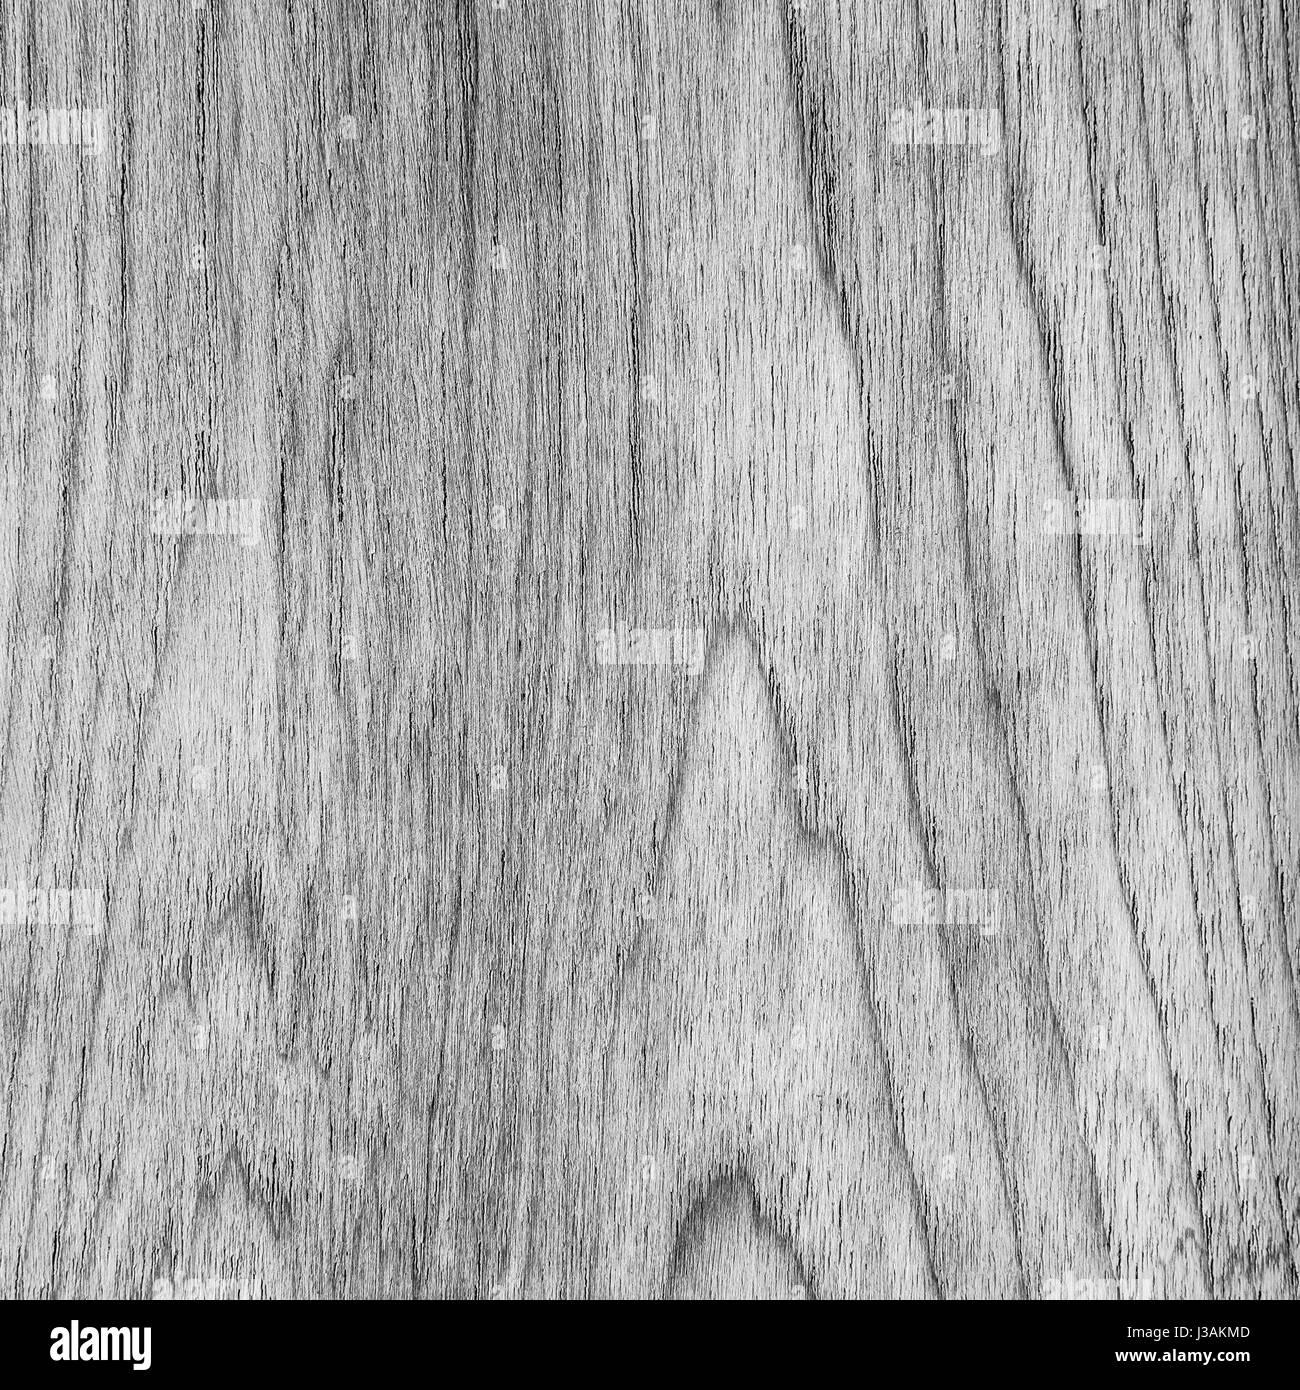 Teak Wood Texture High Resolution Stock Photography And Images Alamy